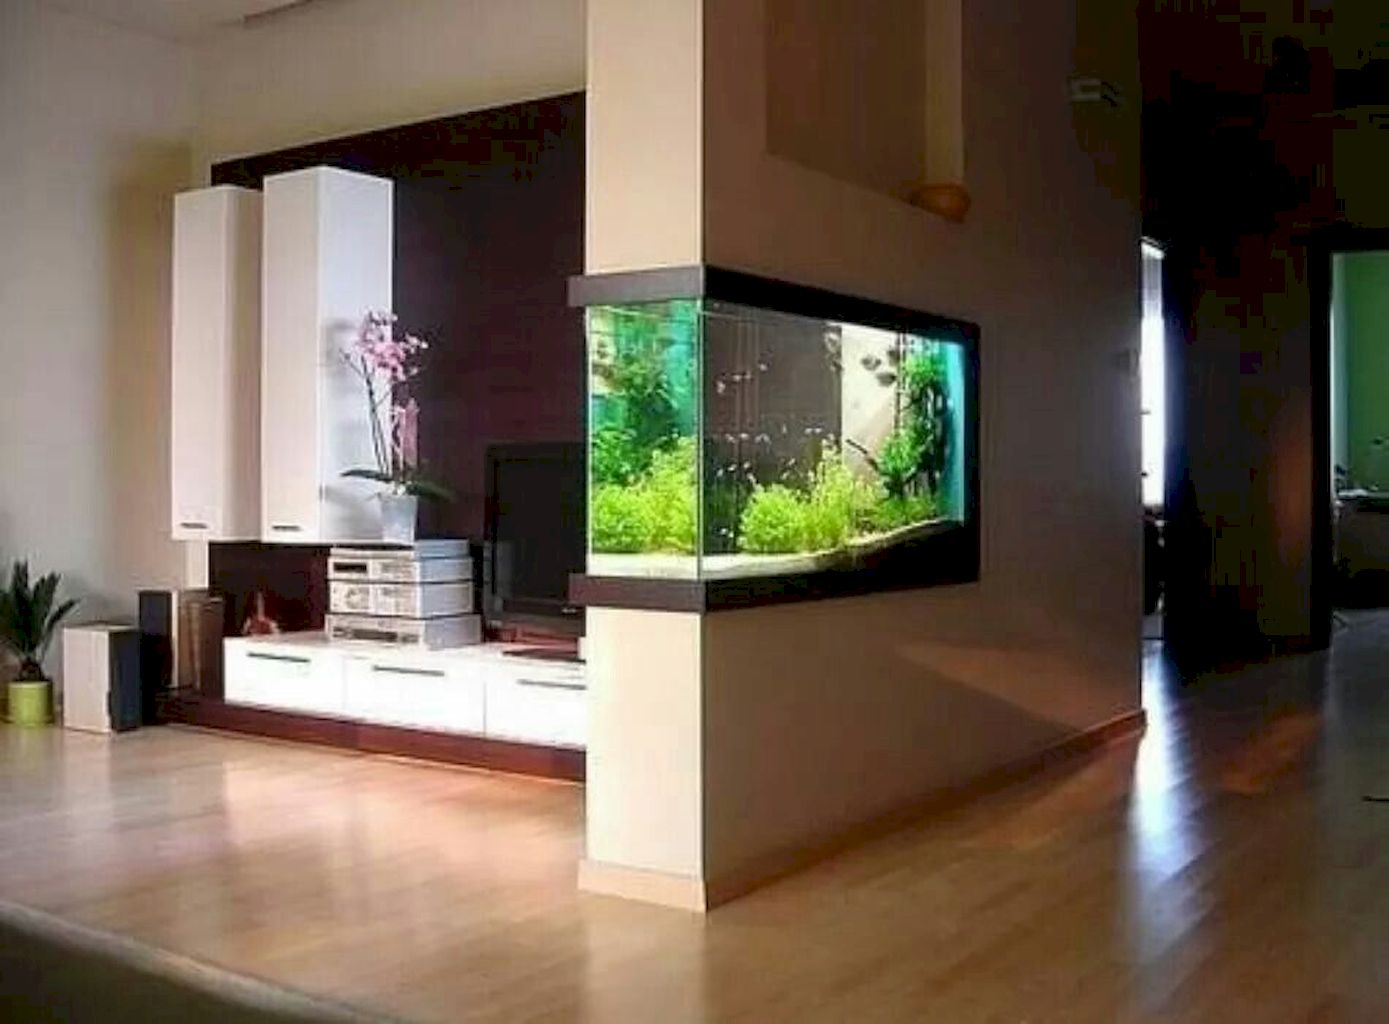 https://elonahome.com/wp-content/uploads/2018/12/Exotic-Wall-Mounted-Aquarium-Giving-Better-Mood-Everyday-Part-32.jpg